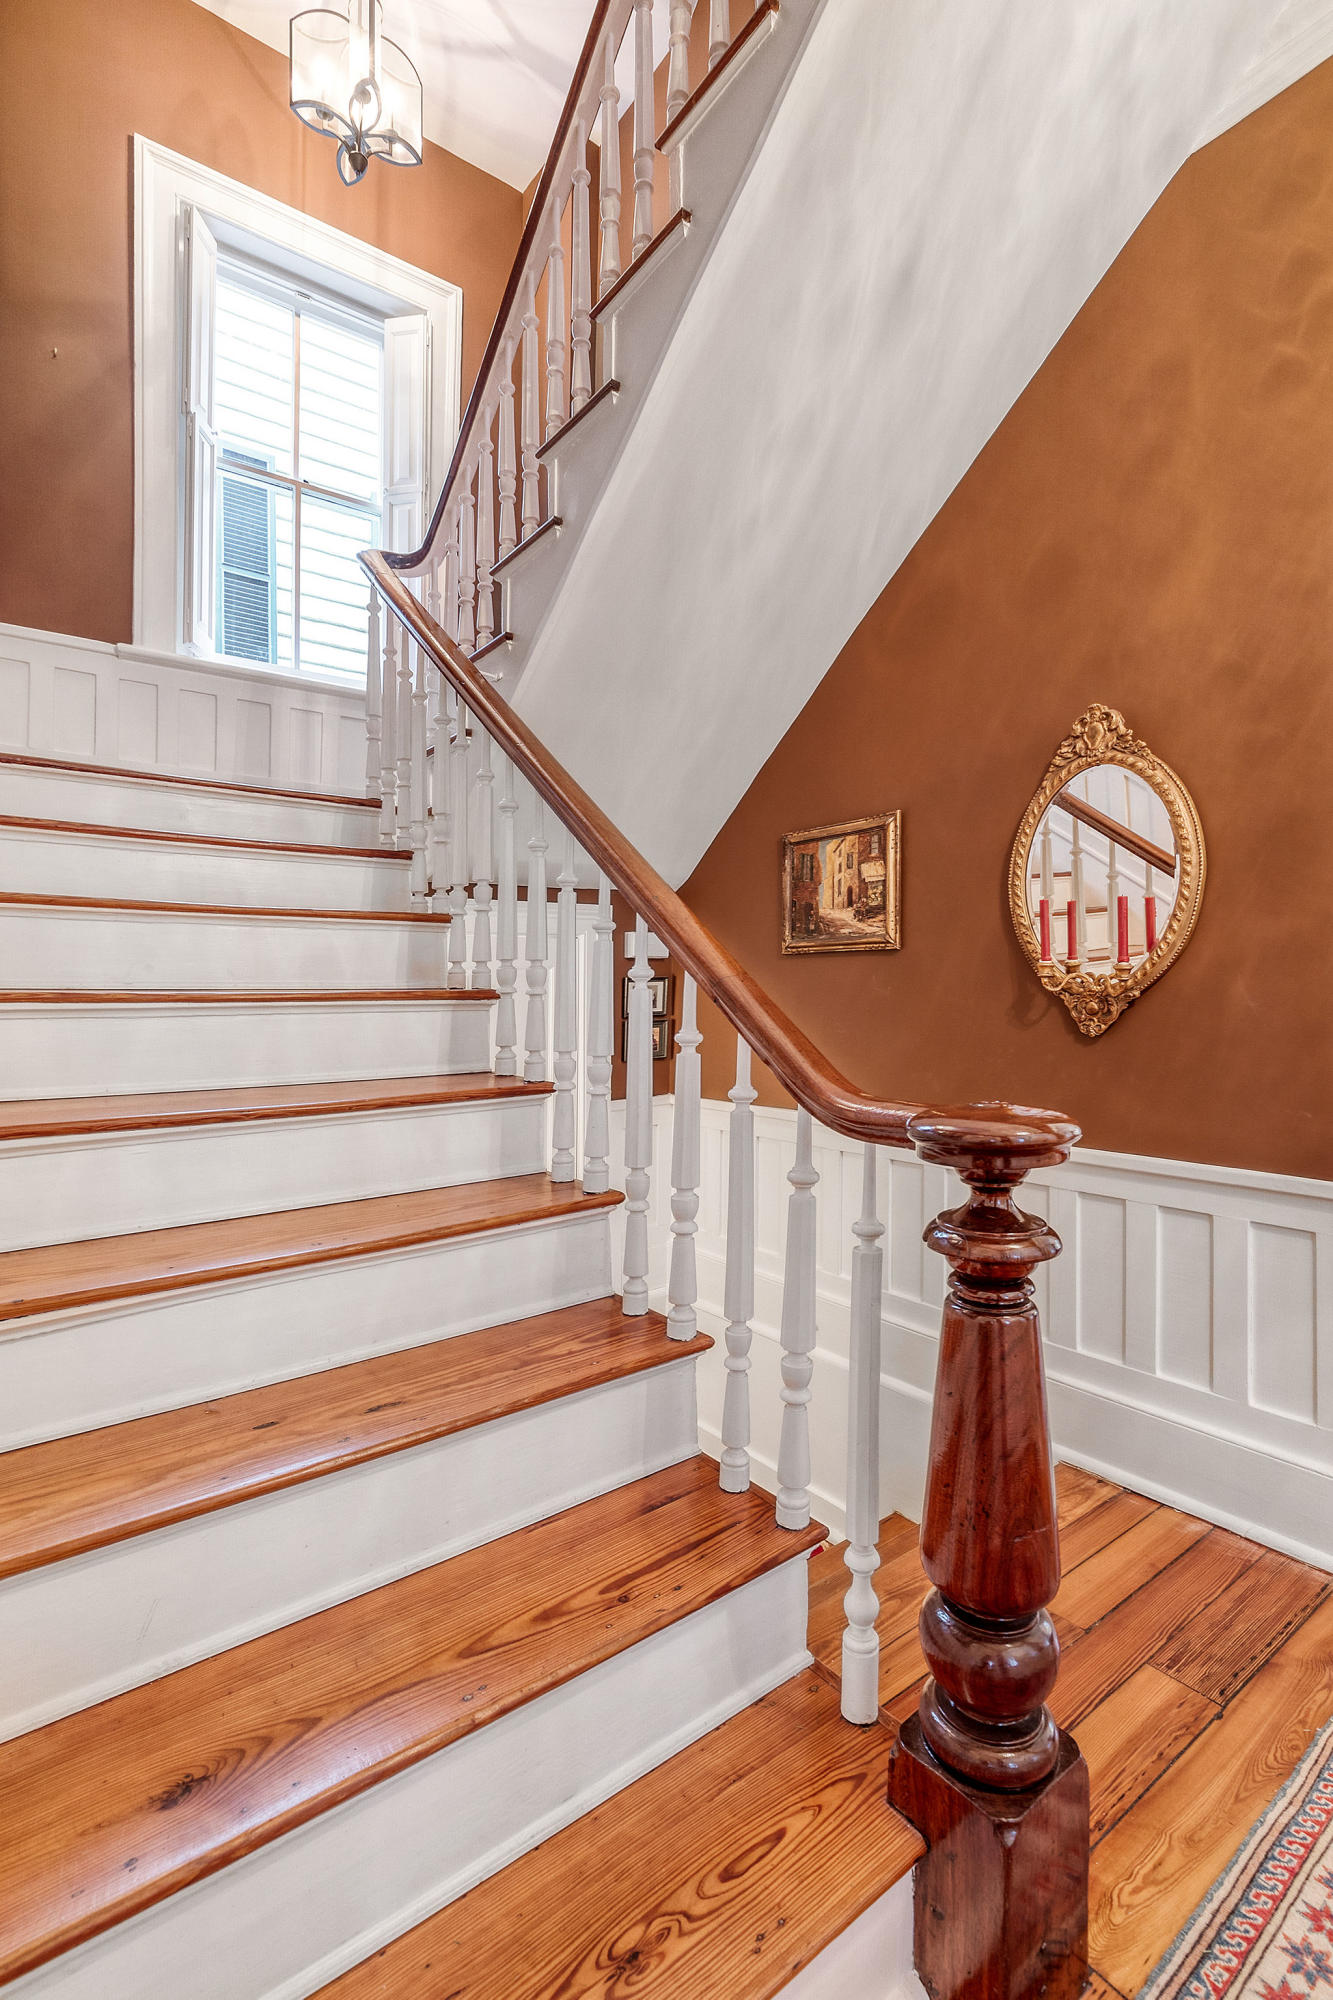 South of Broad Homes For Sale - 53 Church, Charleston, SC - 5